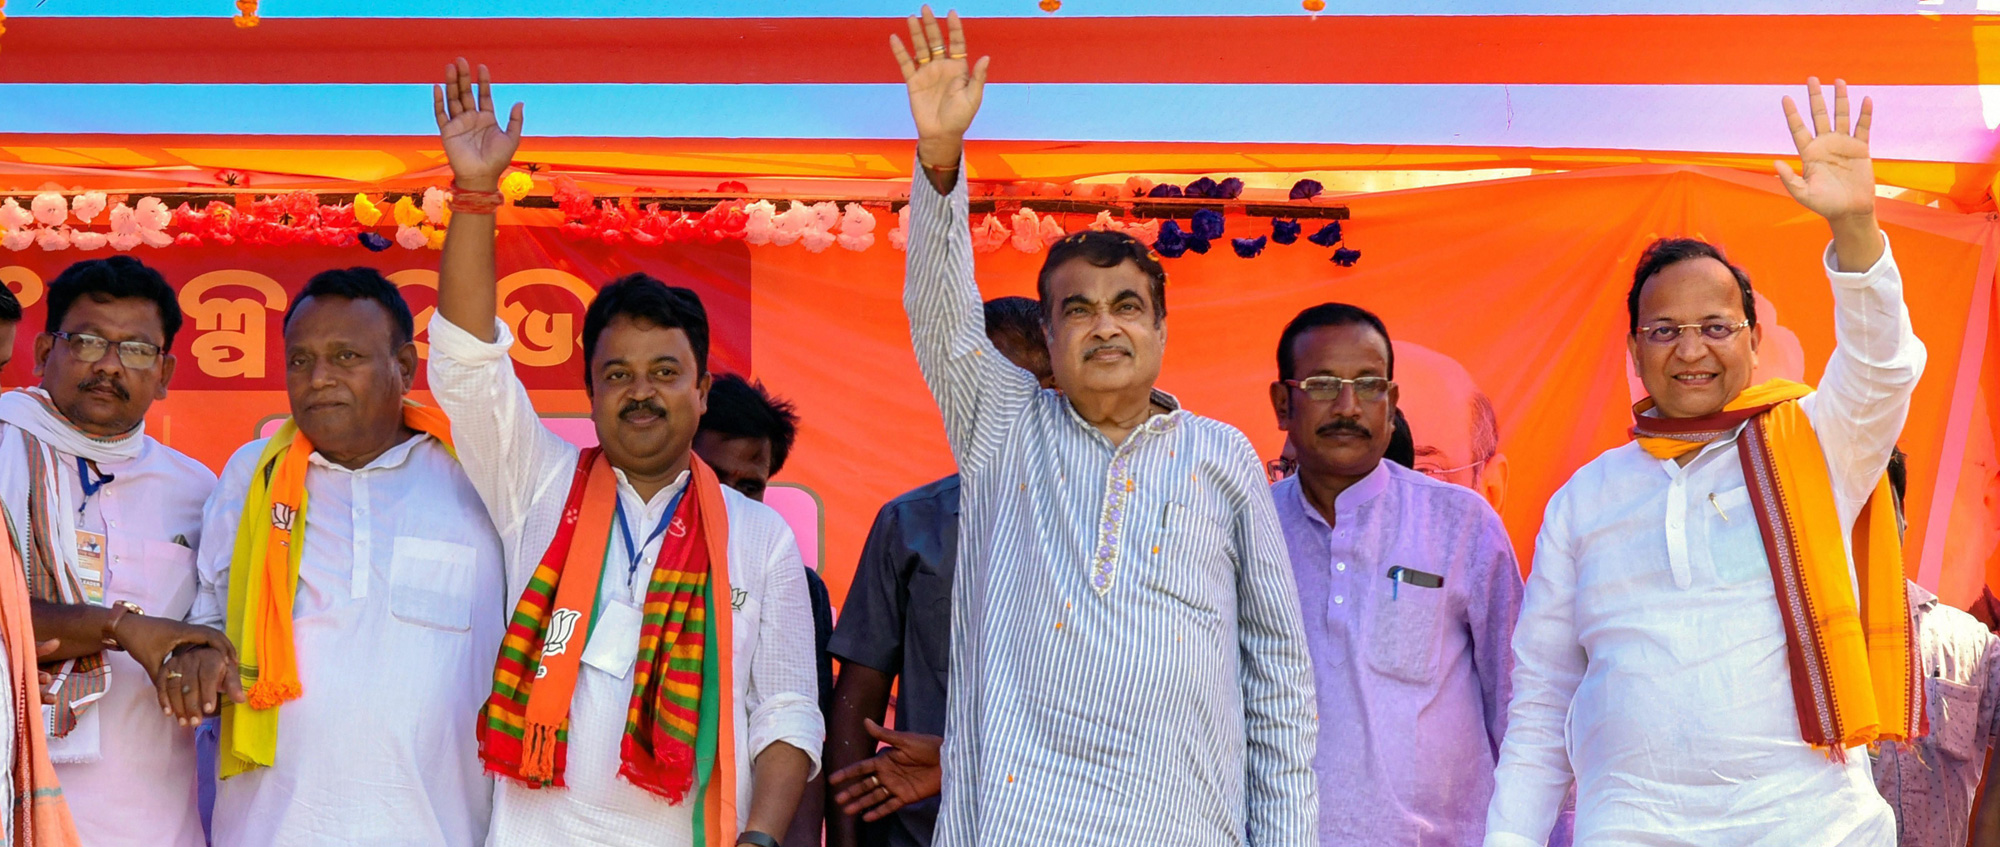 Union minister and BJP leader Nitin Gadkari along with party leaders waves at supporters during an election campaign meeting in support of the party candidates, at Barahpur, Bhadrak on Wednesday, April 24, 2019.